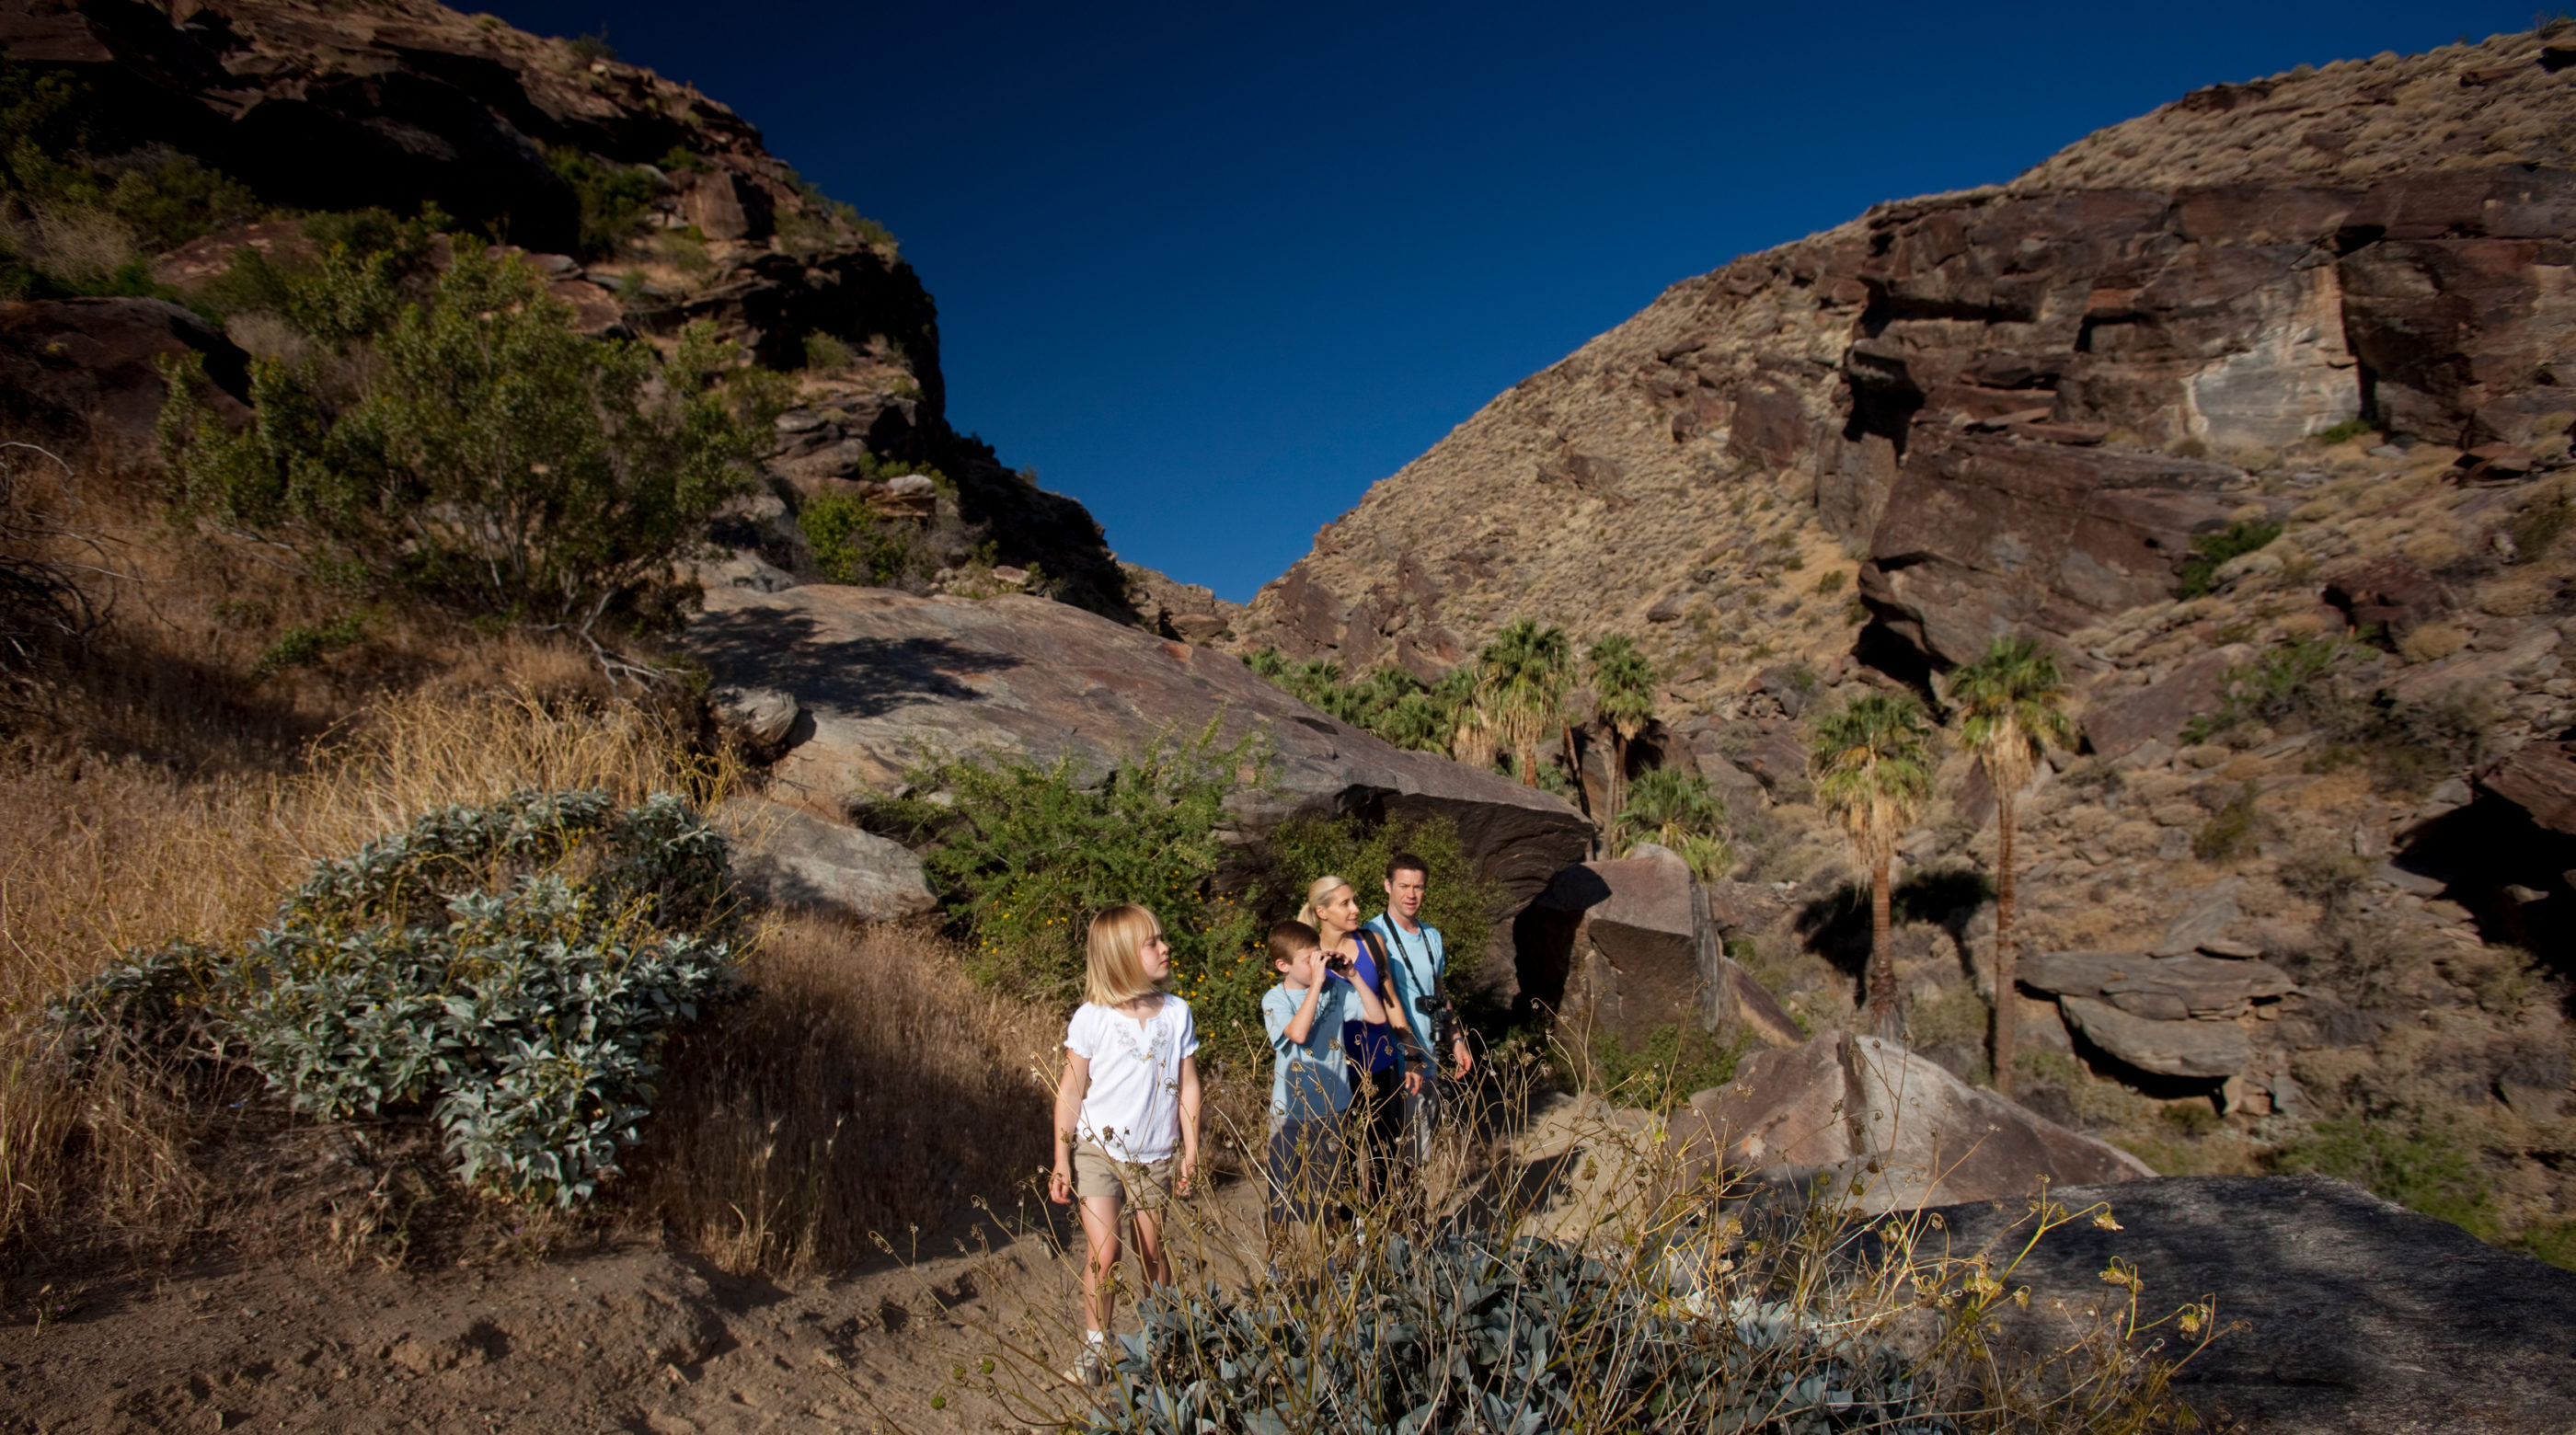 A family hikes through Indian Canyons on a trail with rocky hills in the background.